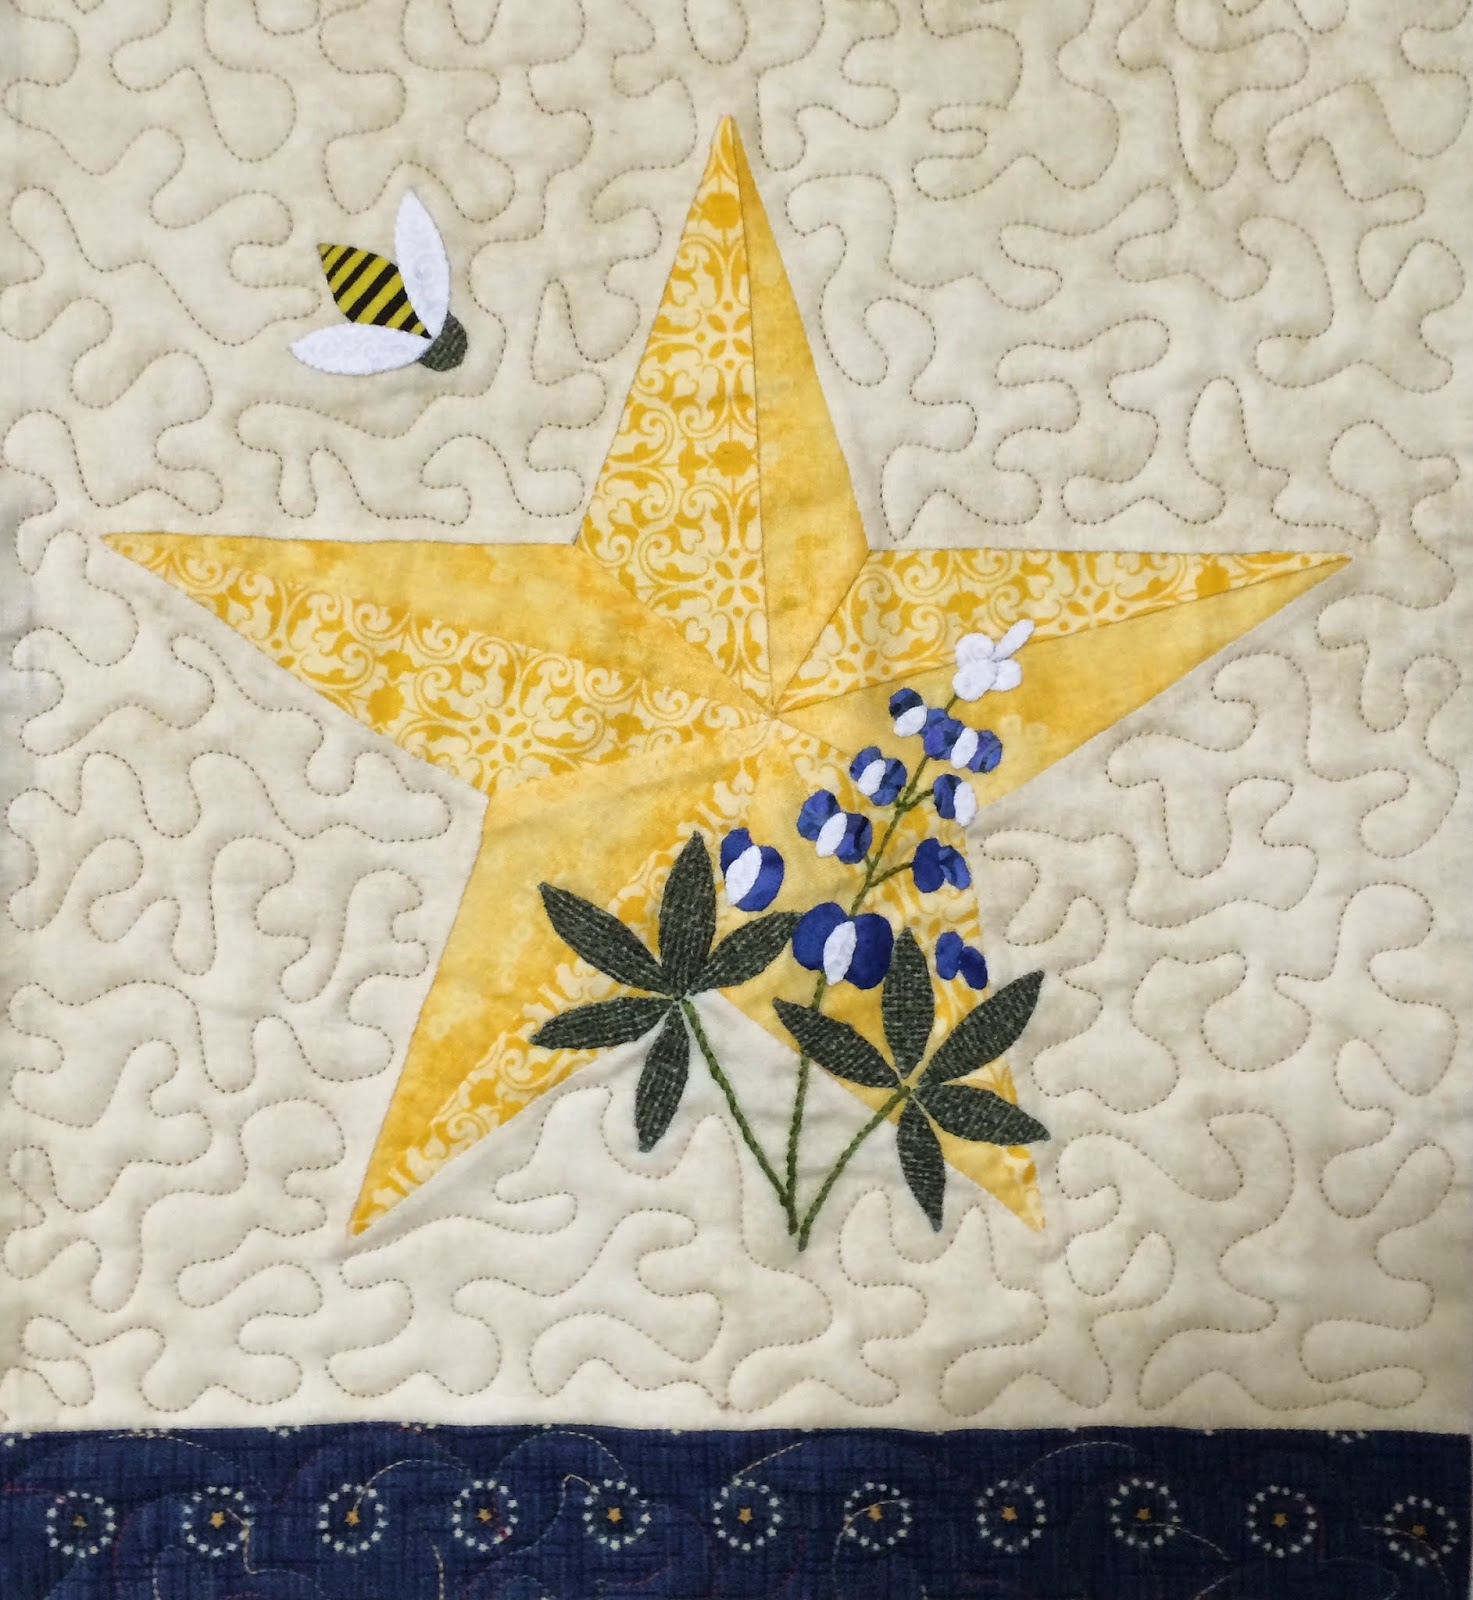 B & B Quilt Shop - Shop Hop of Texas Quilt